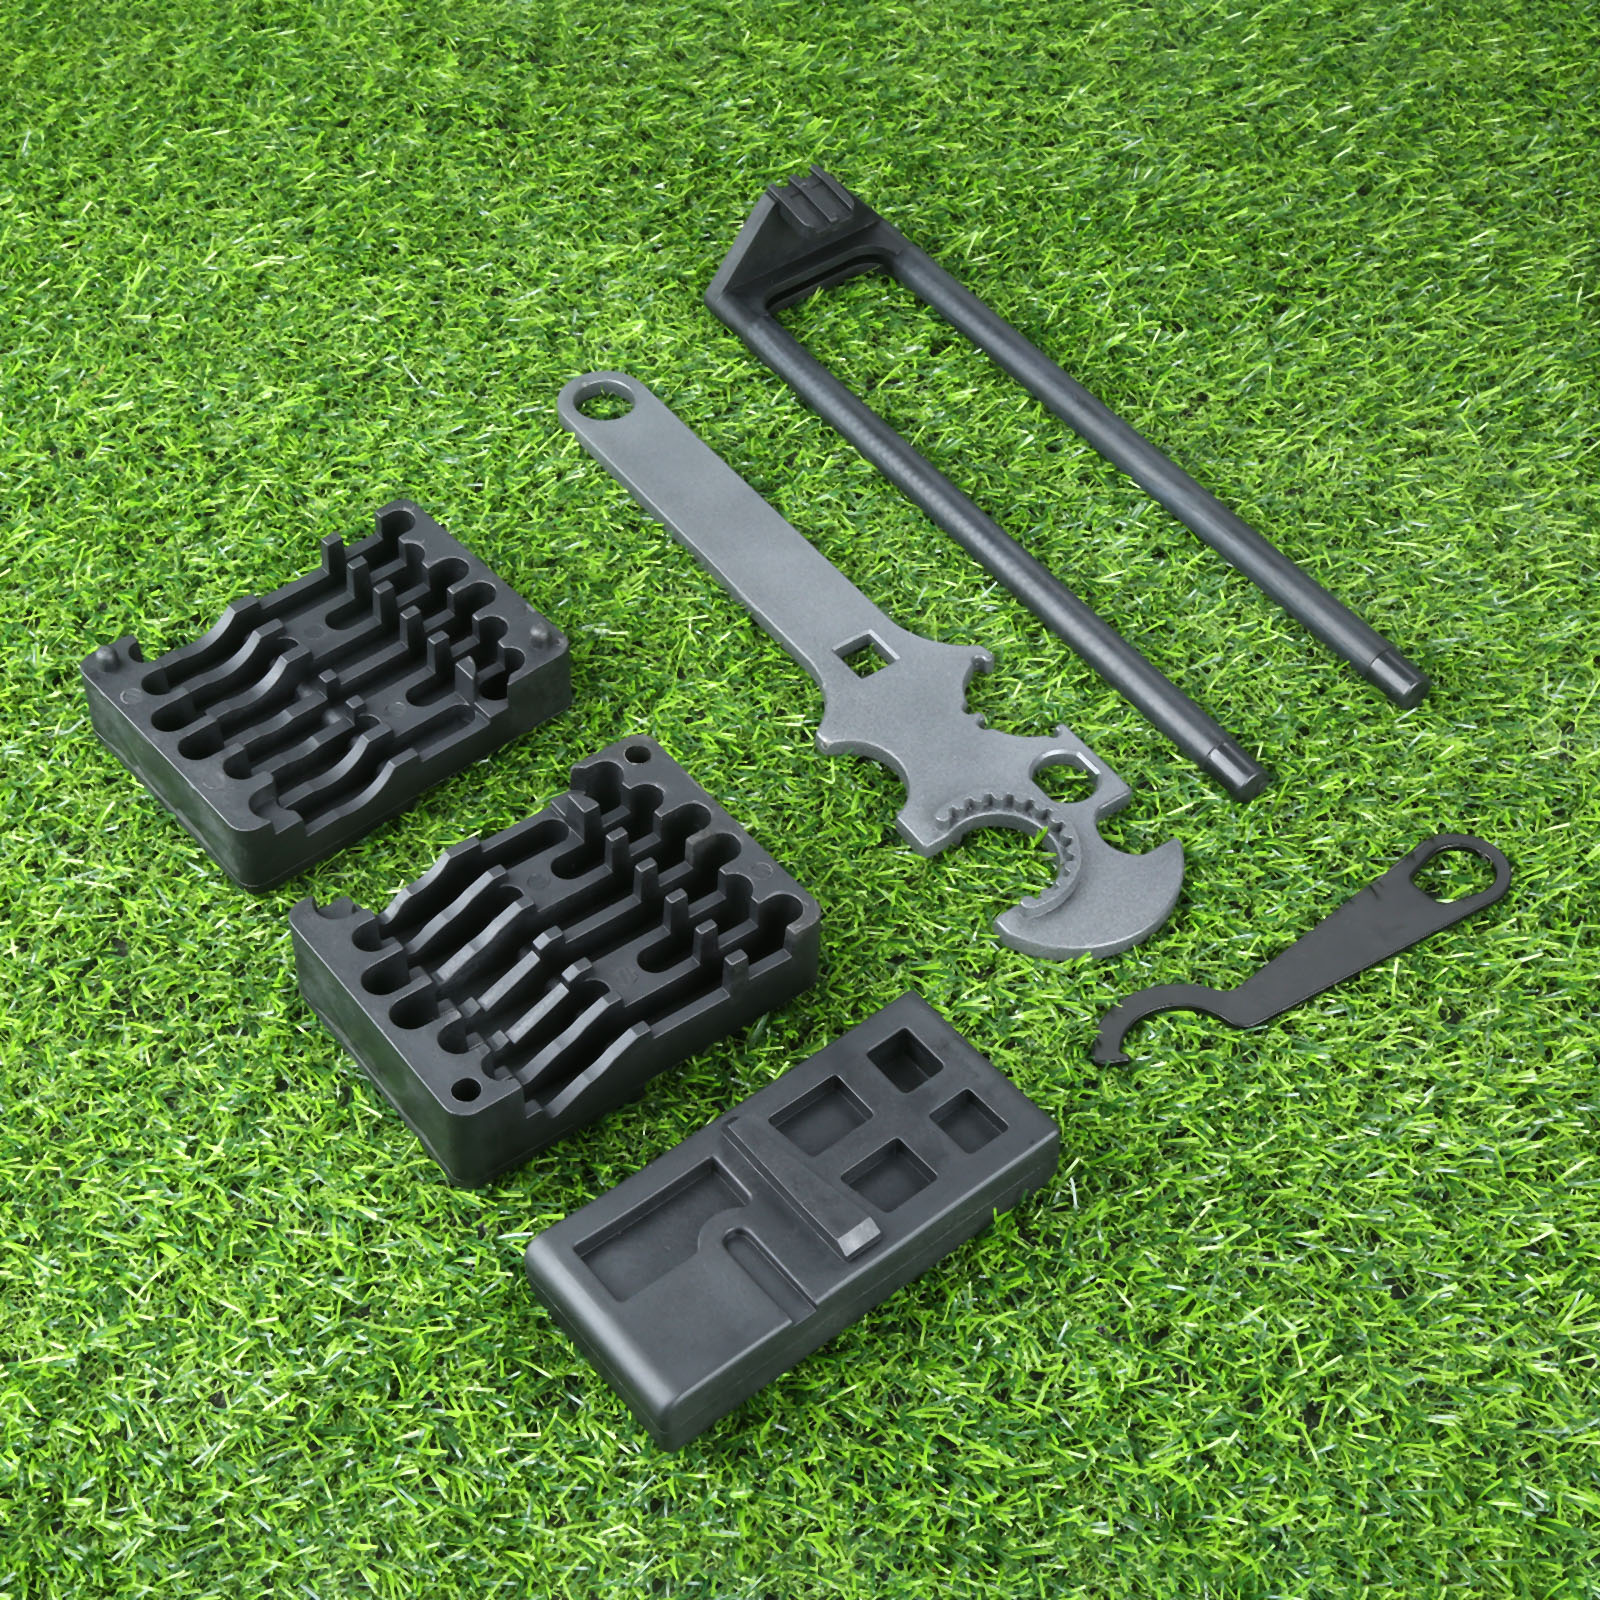 Tactical Professional 5pcs/Set Lower& Upper Vise Block & Wrench Tool AR15 Strong Portable Outdoor Tools Hunting Gun Accessories